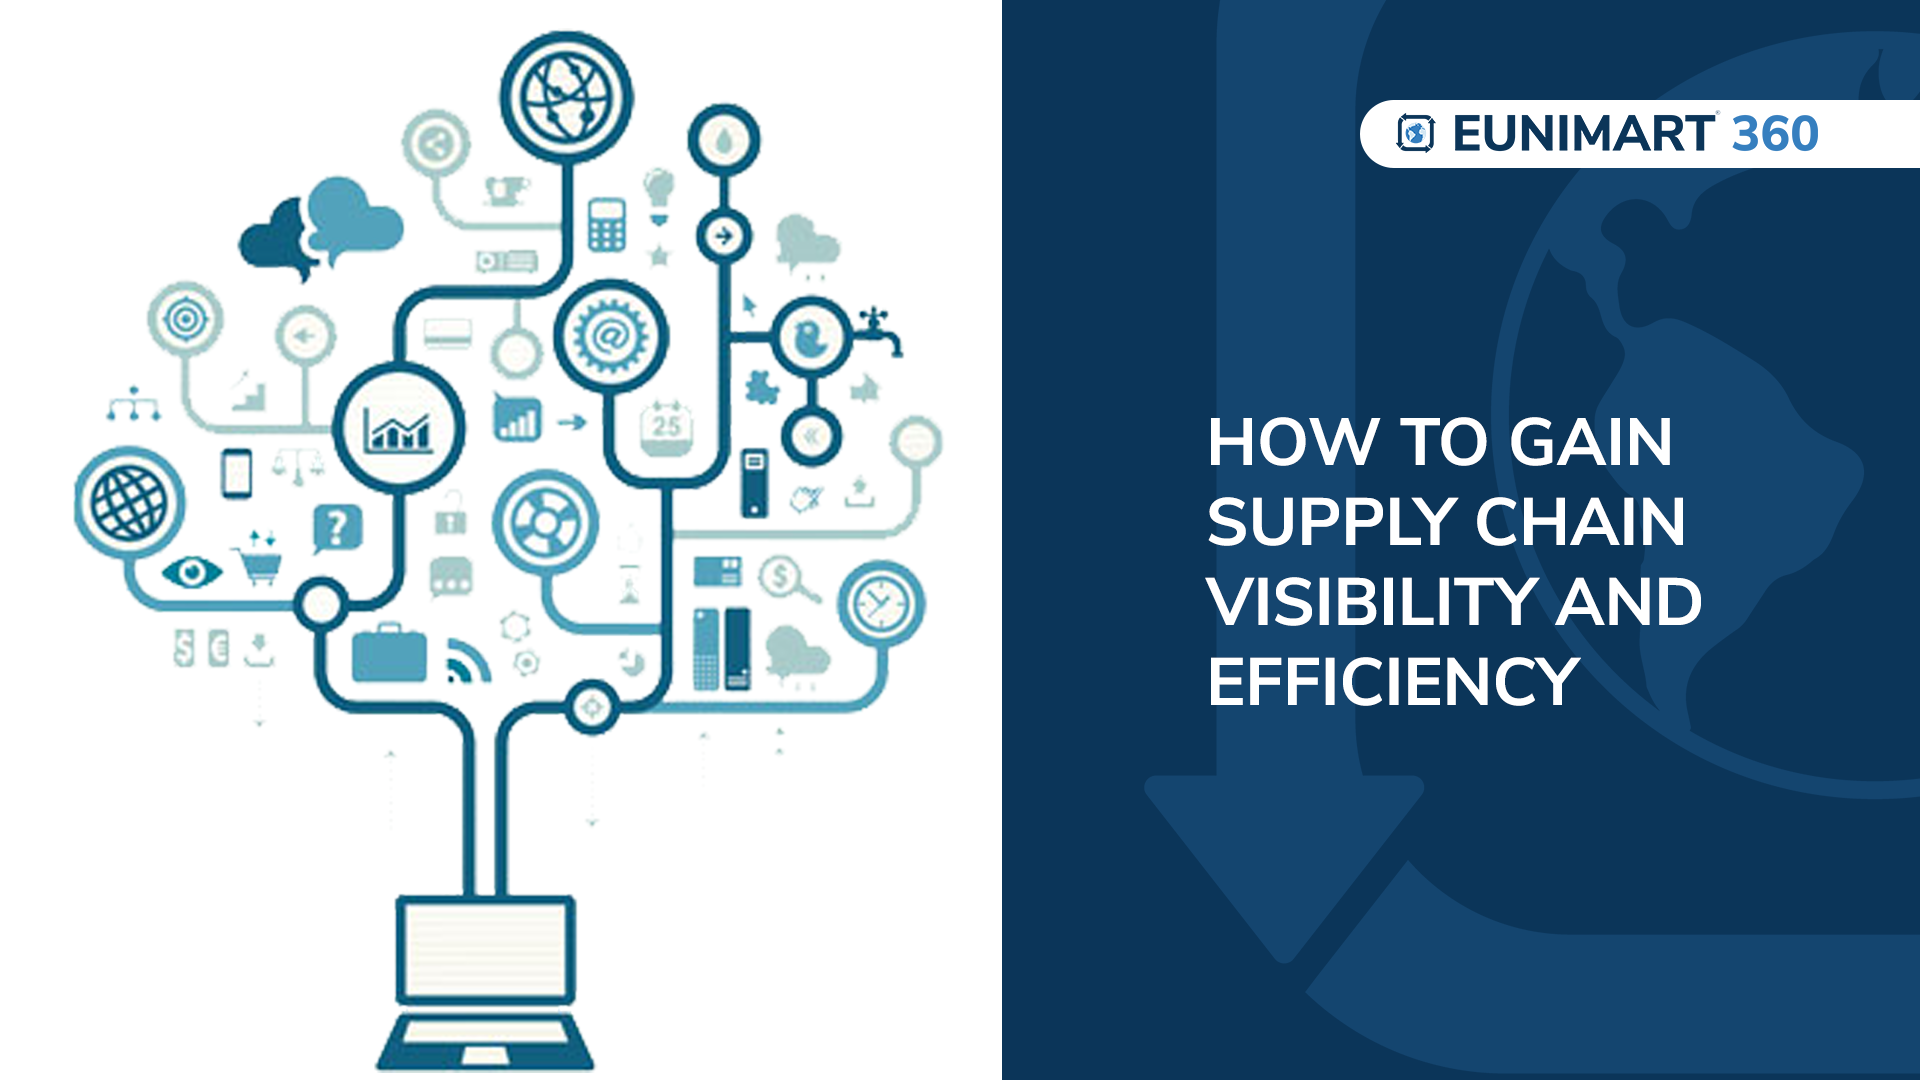 How to gain Supply Chain Visibility and Efficiency